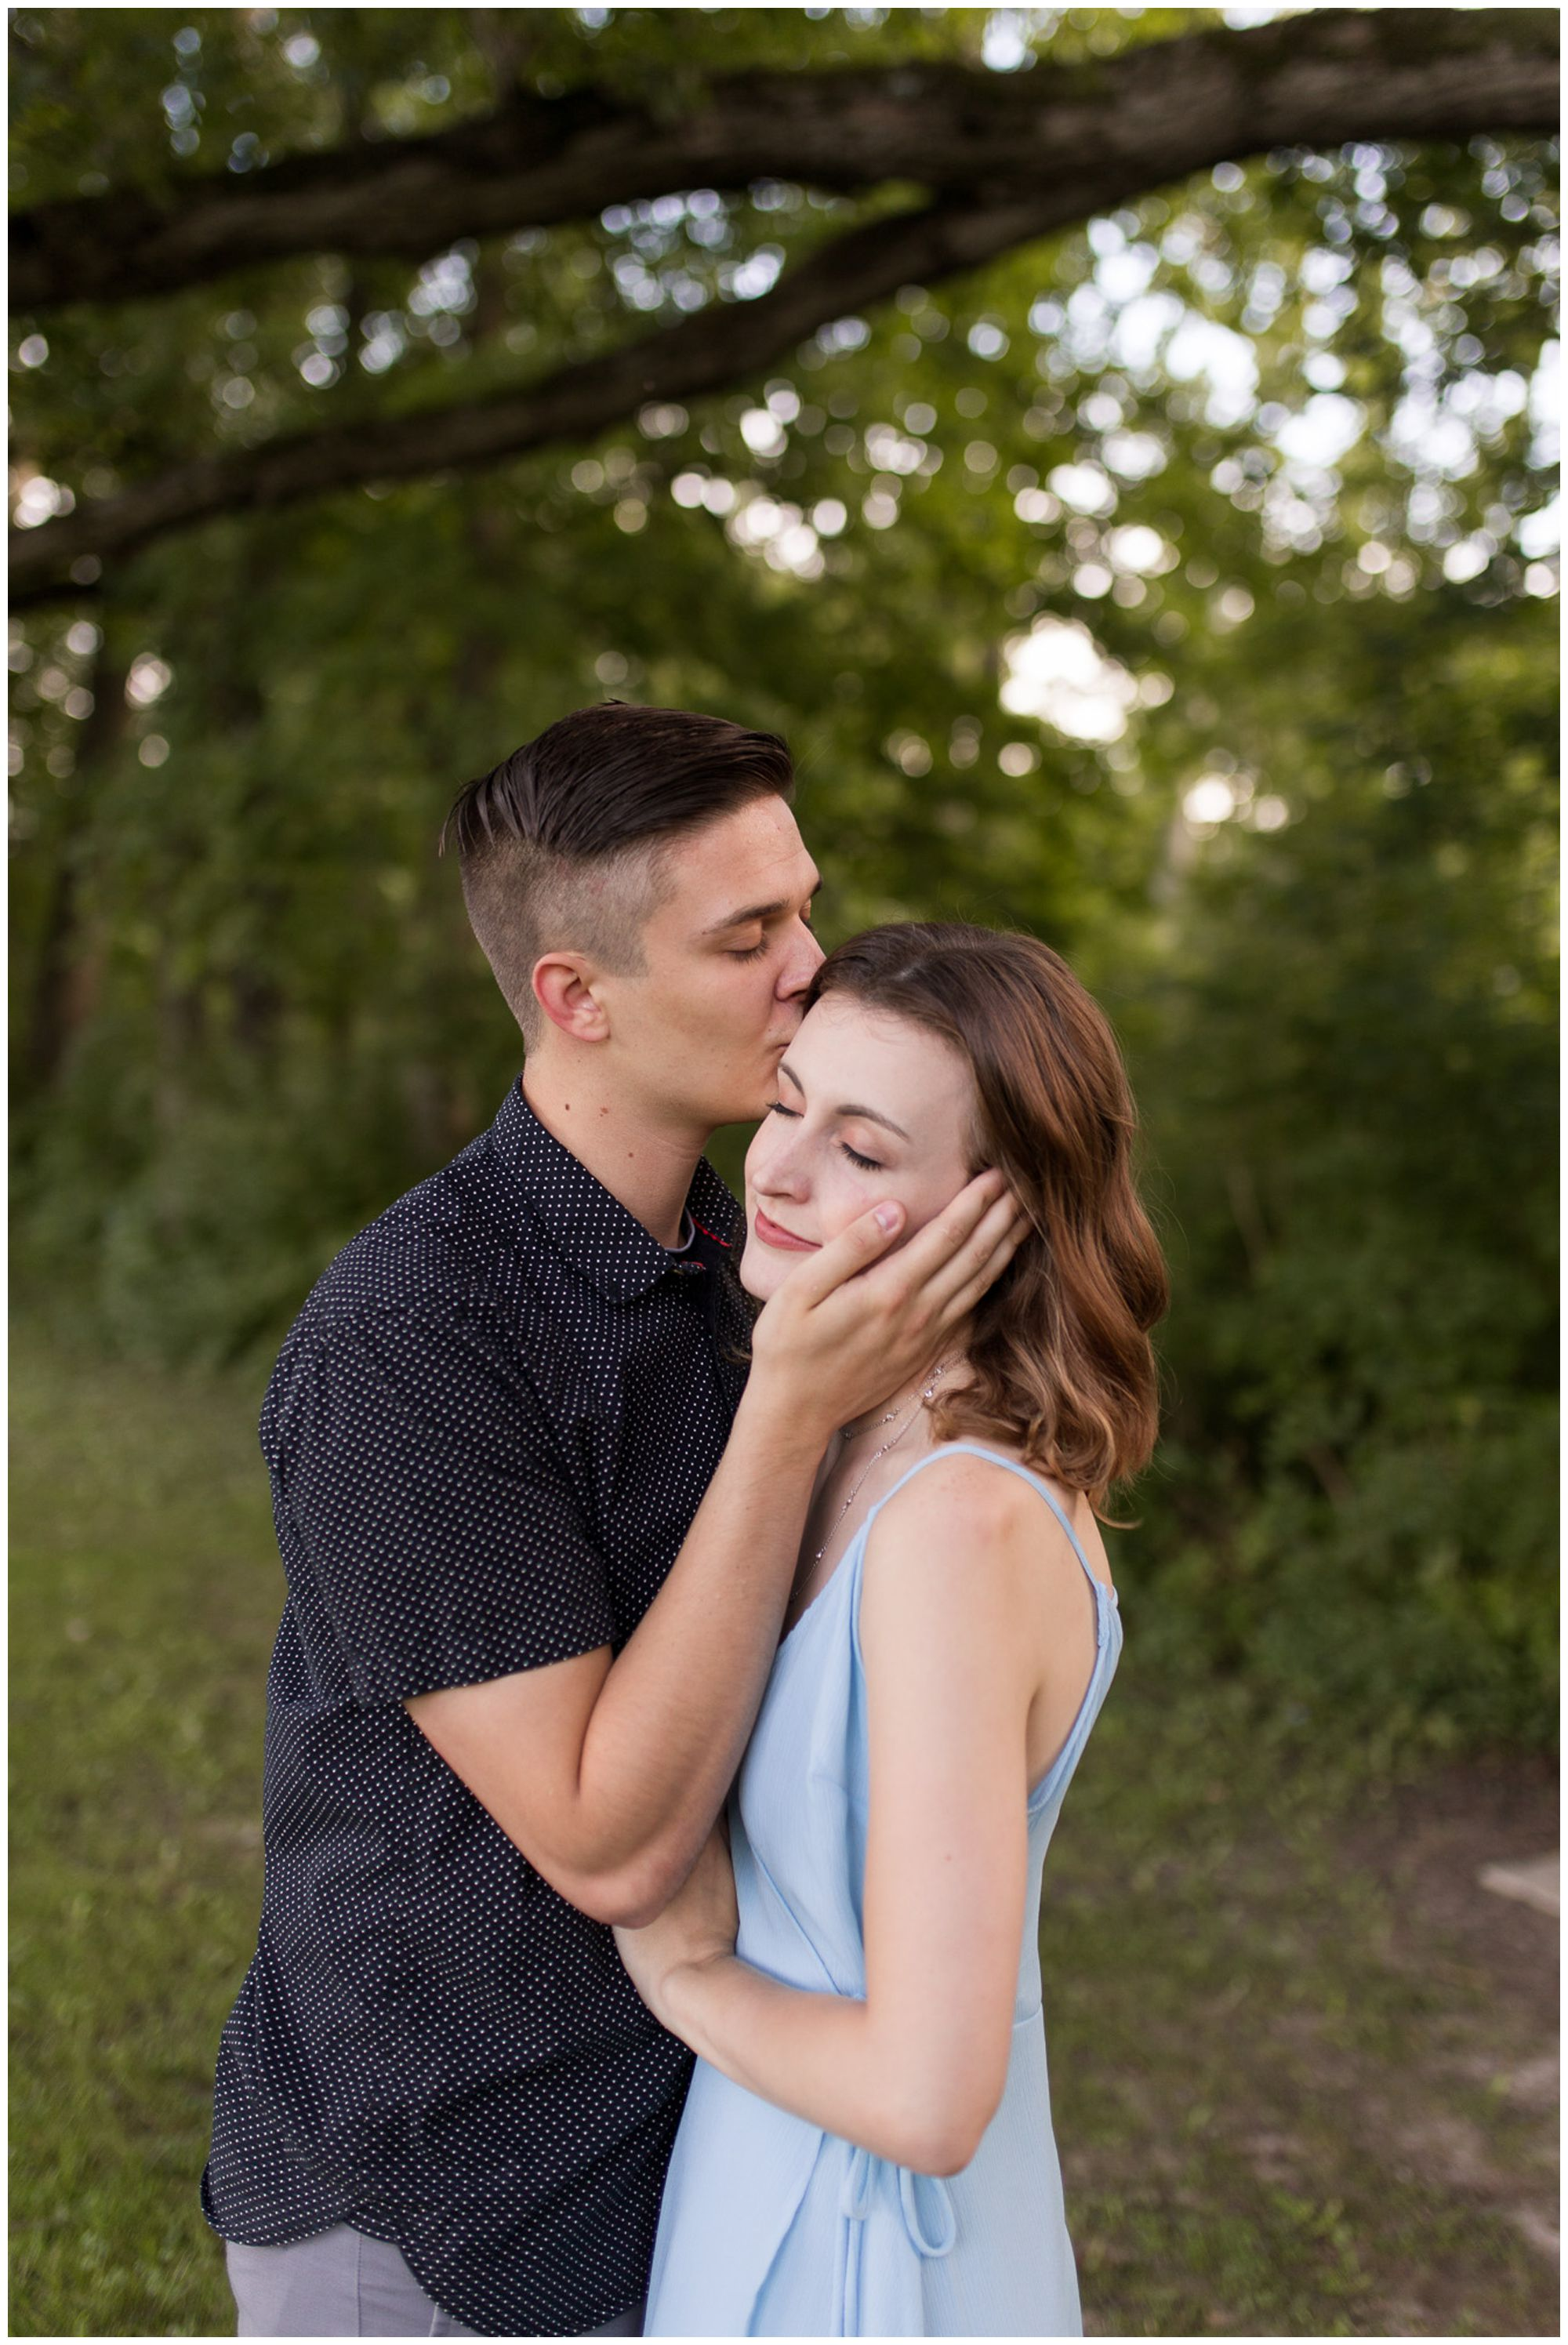 groom kisses bride's temple during Foster Park engagement session in Fort Wayne